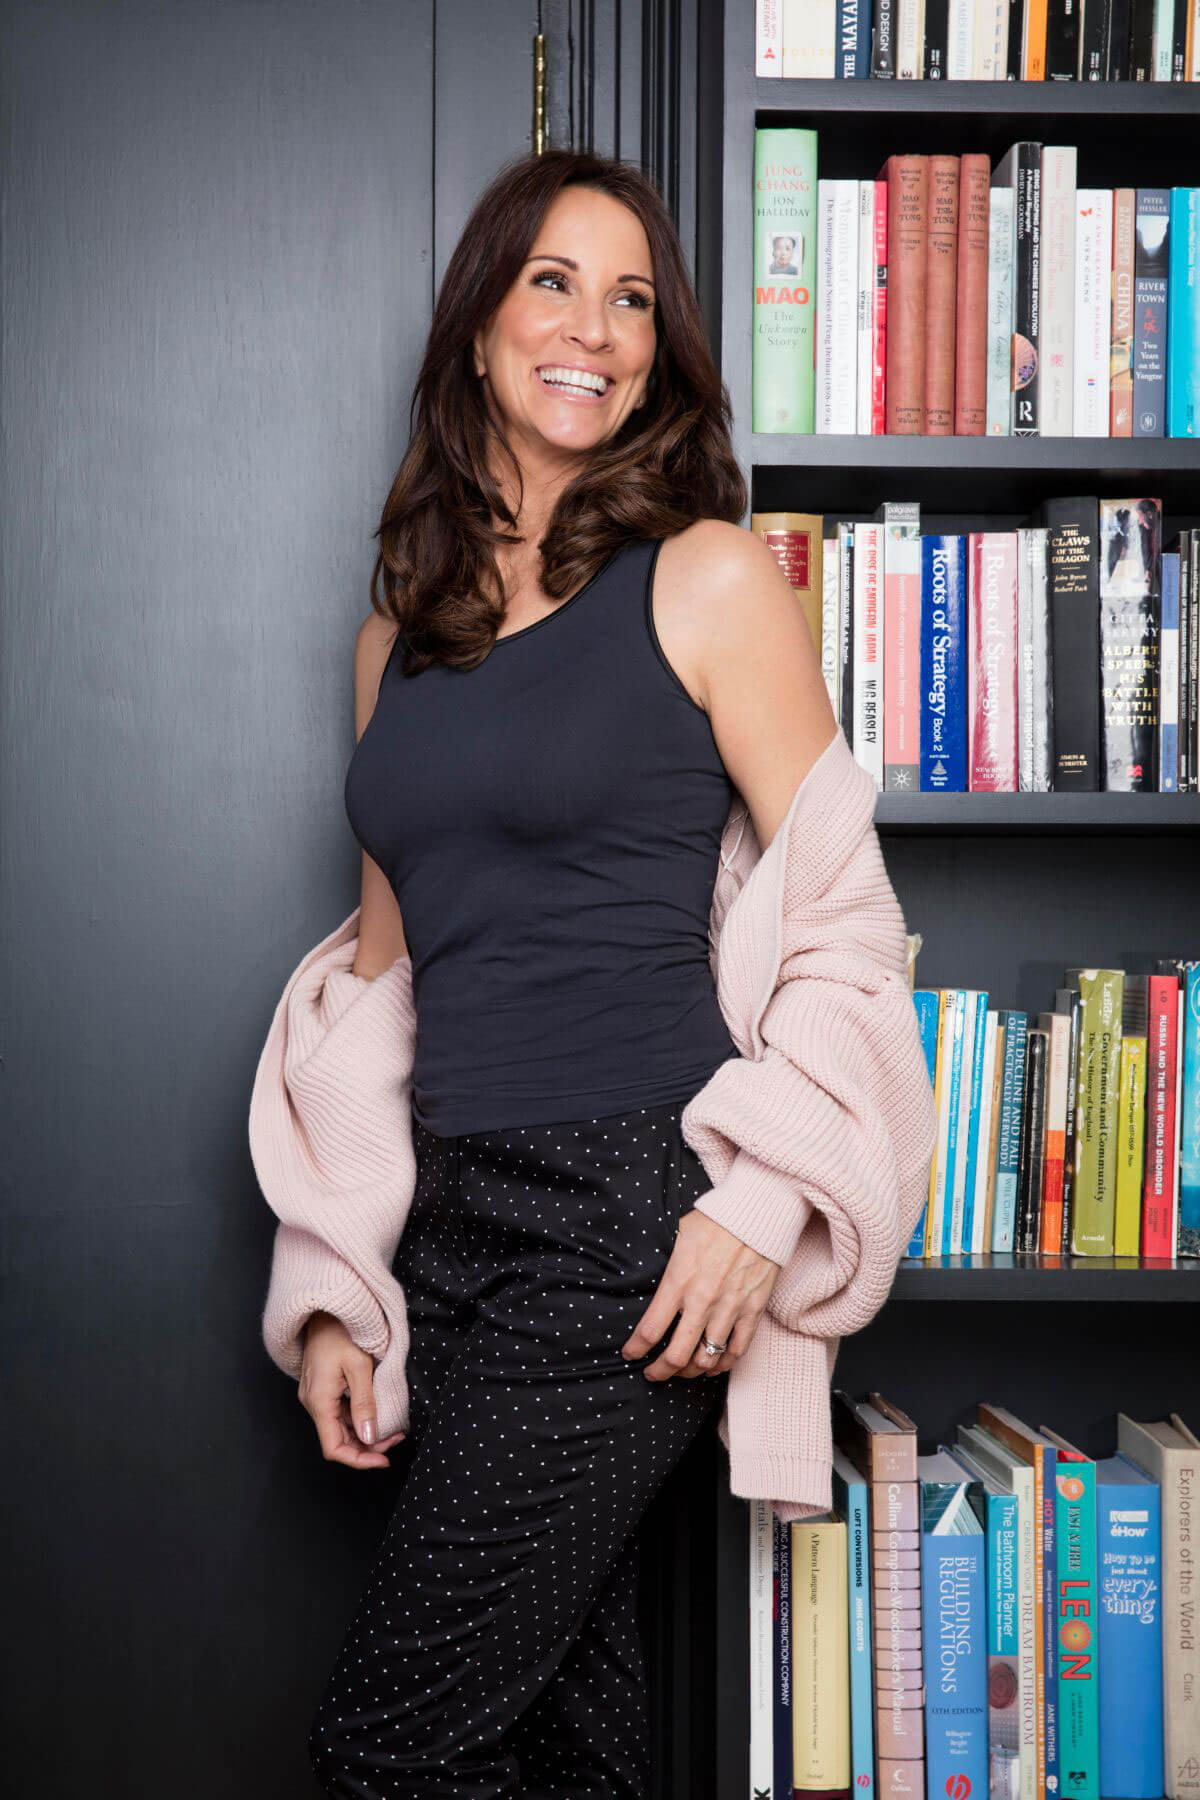 Andrea McLean Poses for Become Underwear Campaign, March 2018 Issue